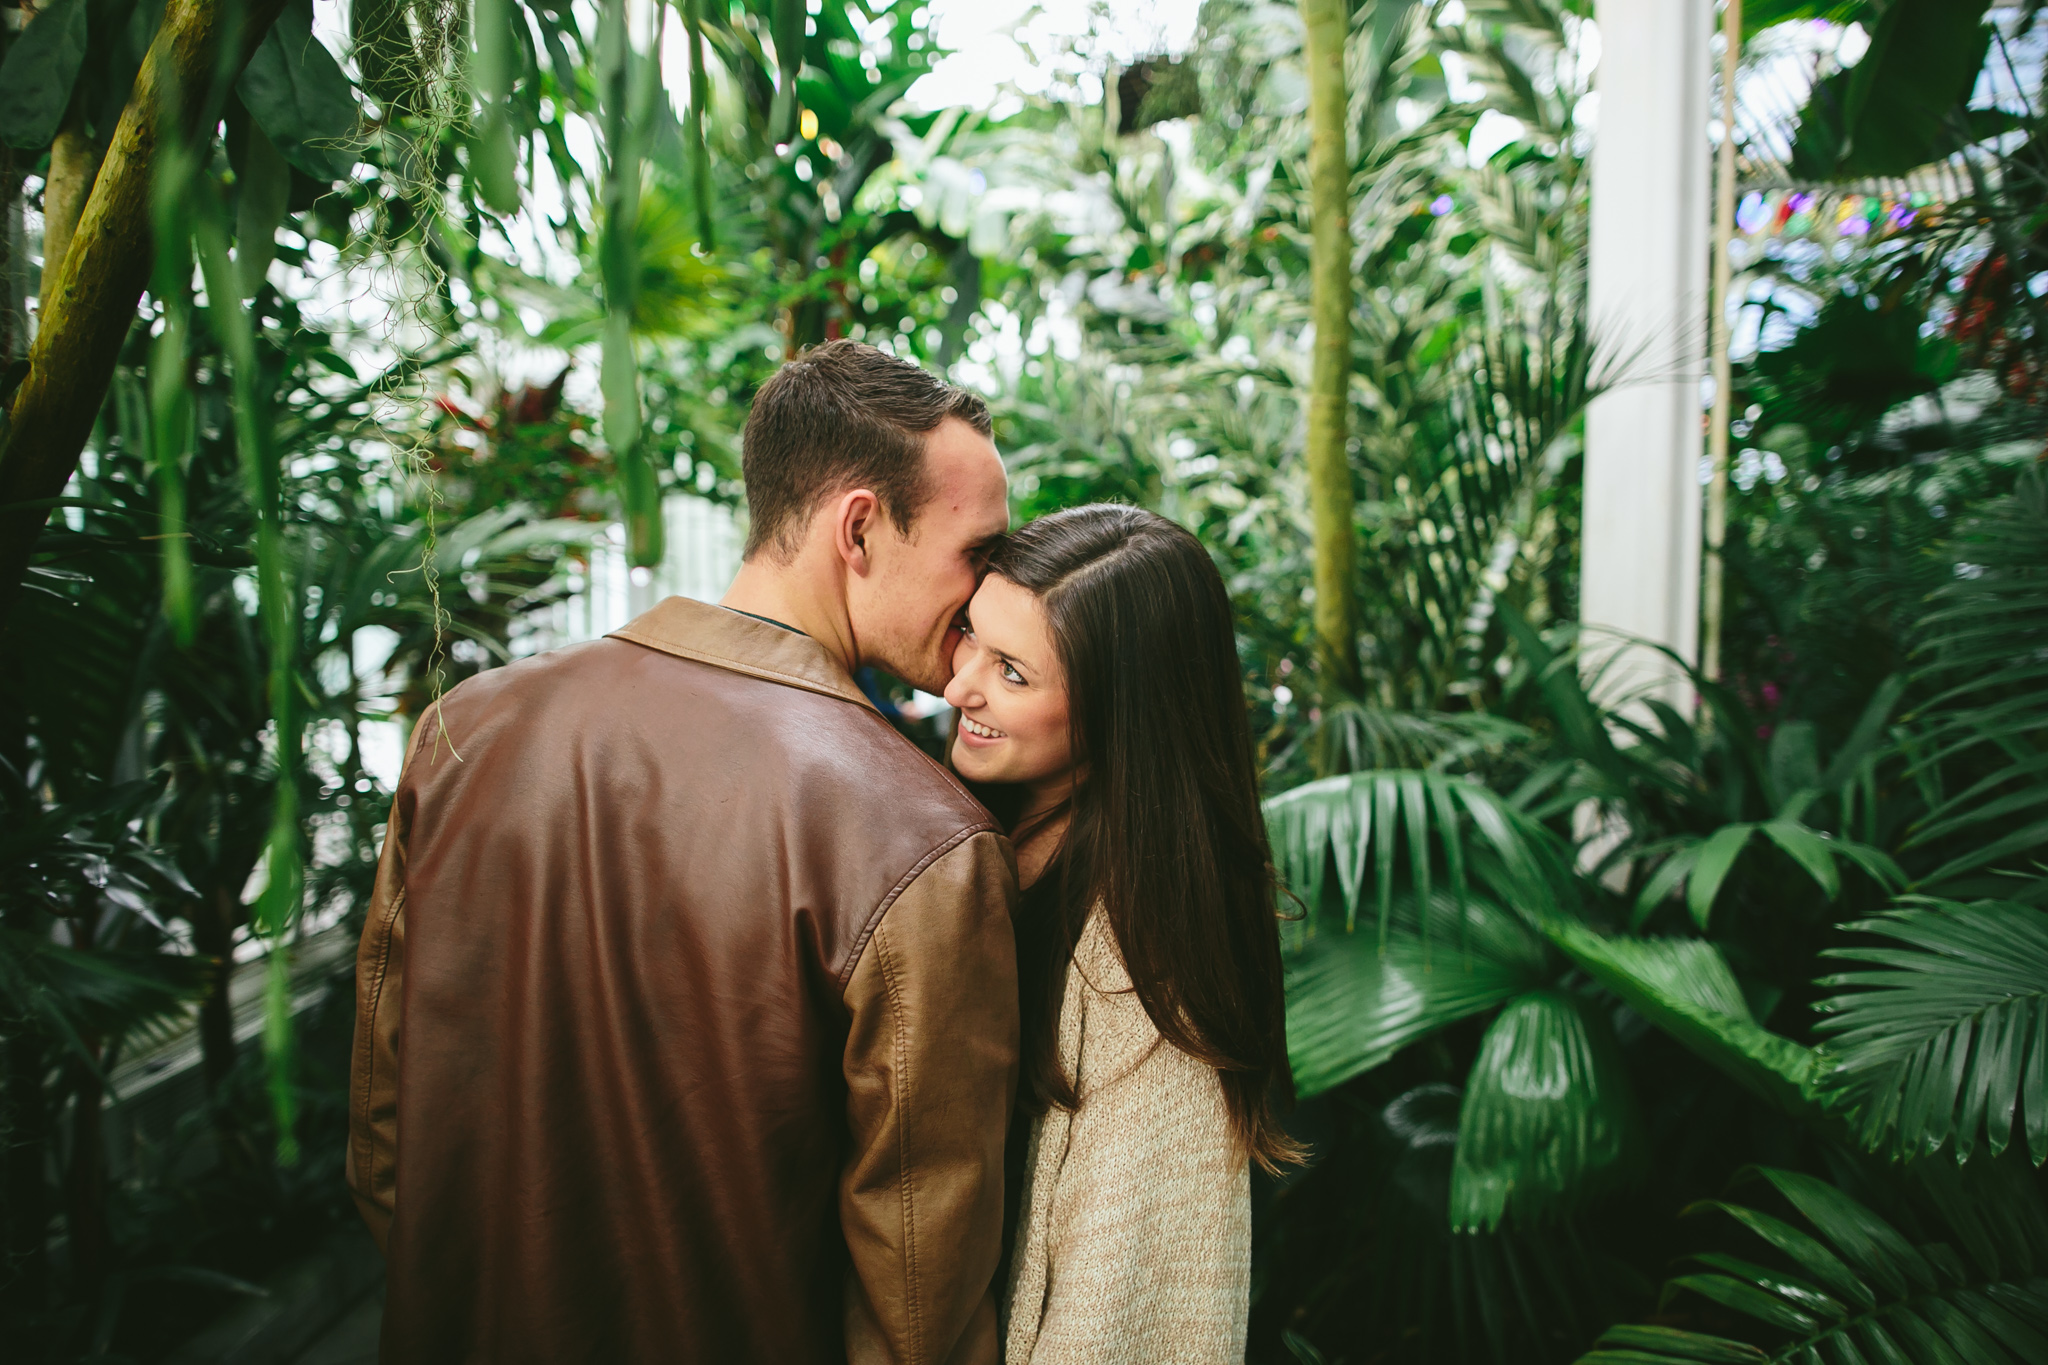 Sunee+Adam-Proposal-KellyBoitanoPhotography_WEB20151229_0040